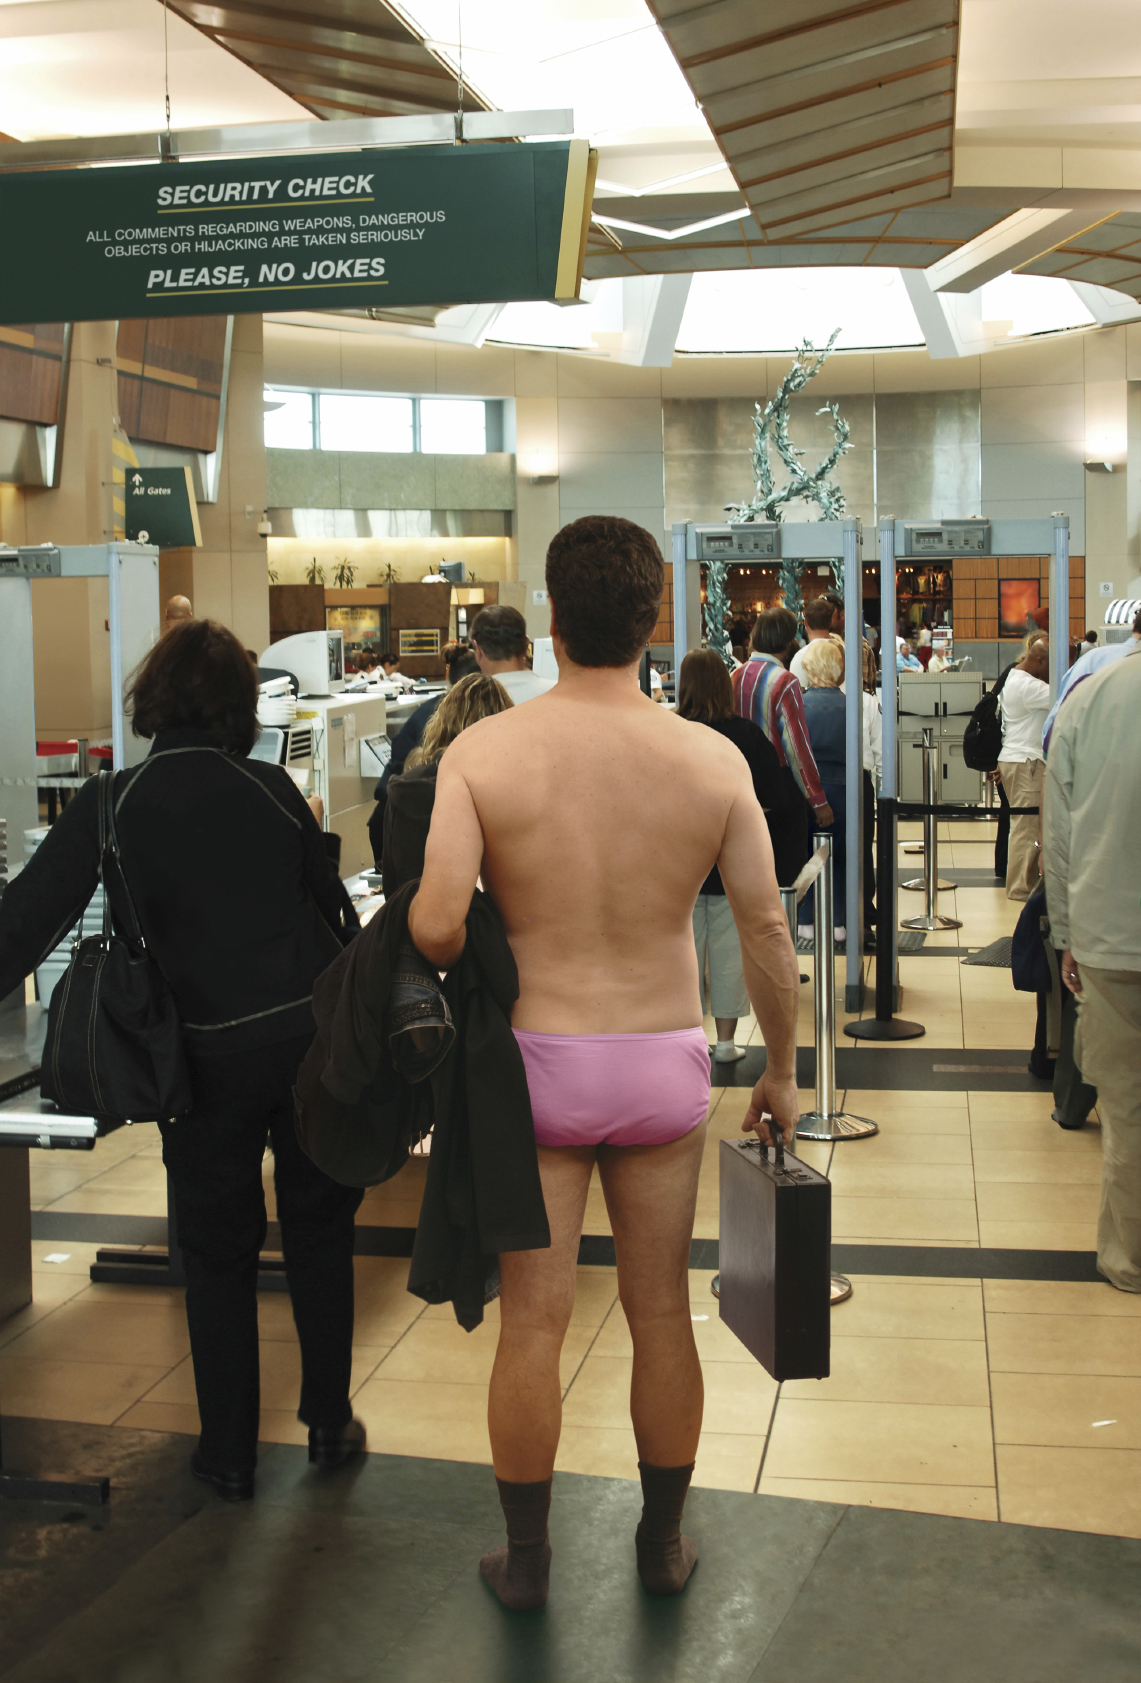 Airport Travelers Rules Tsa